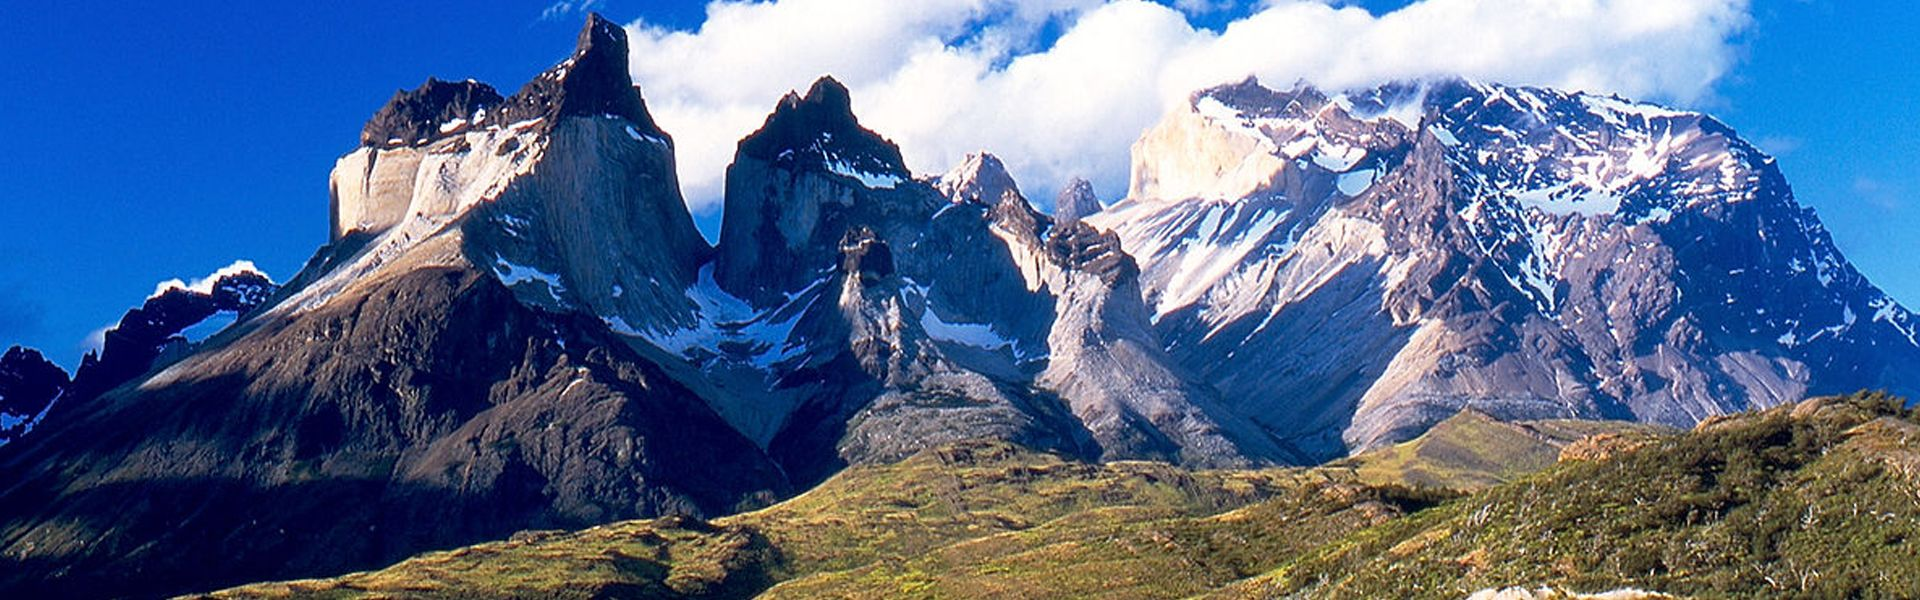 chile austral